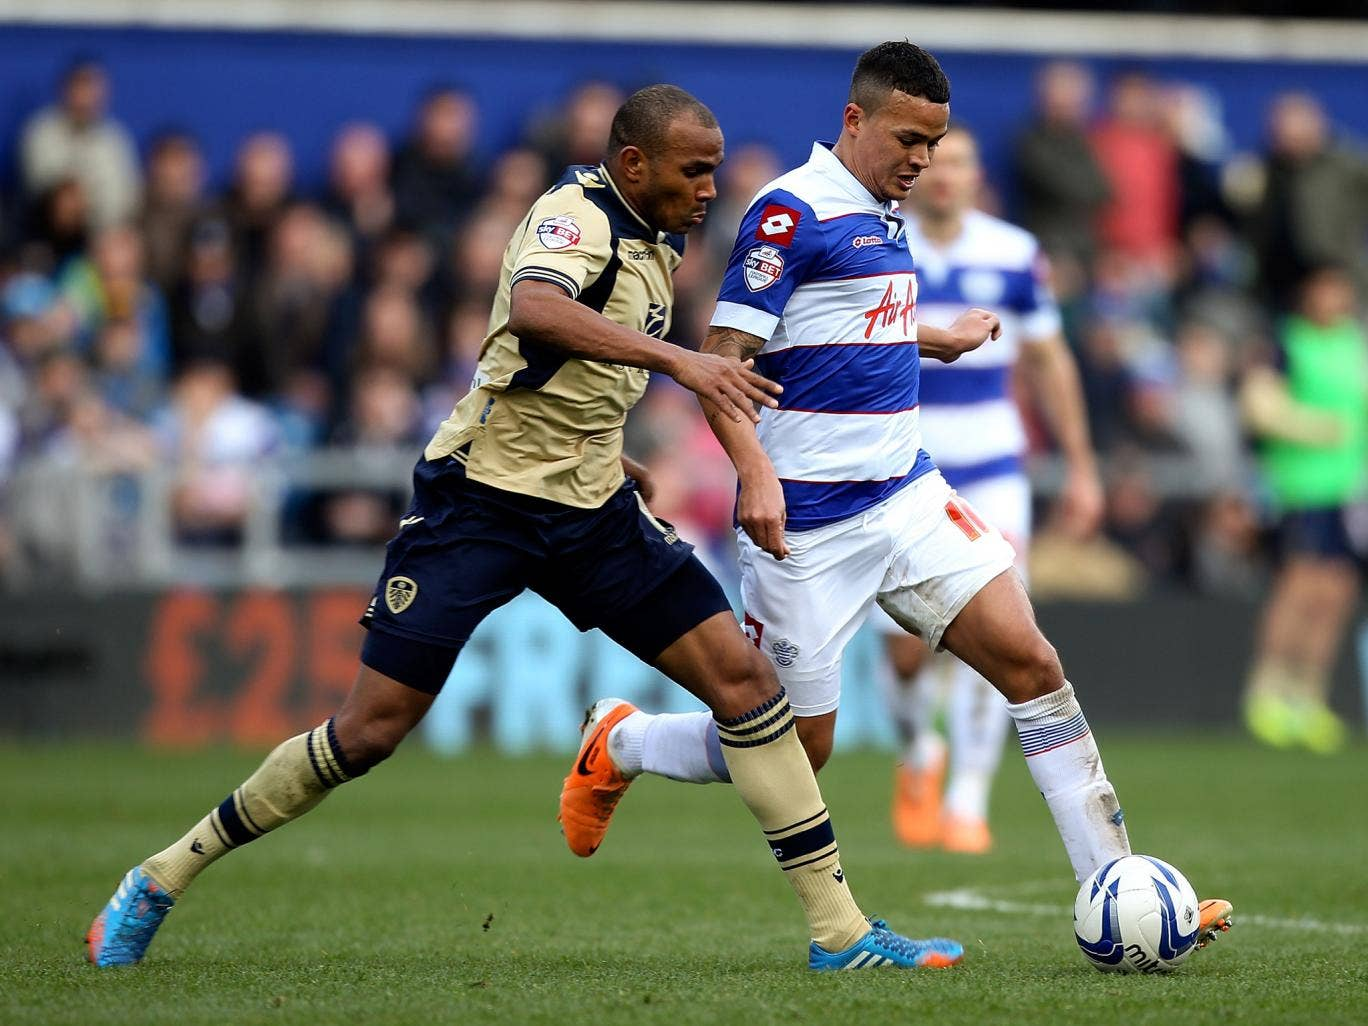 Queens Park Rangers midfielder Jermaine Jenas scored an equaliser for QPR in their 1-1 draw with Leeds